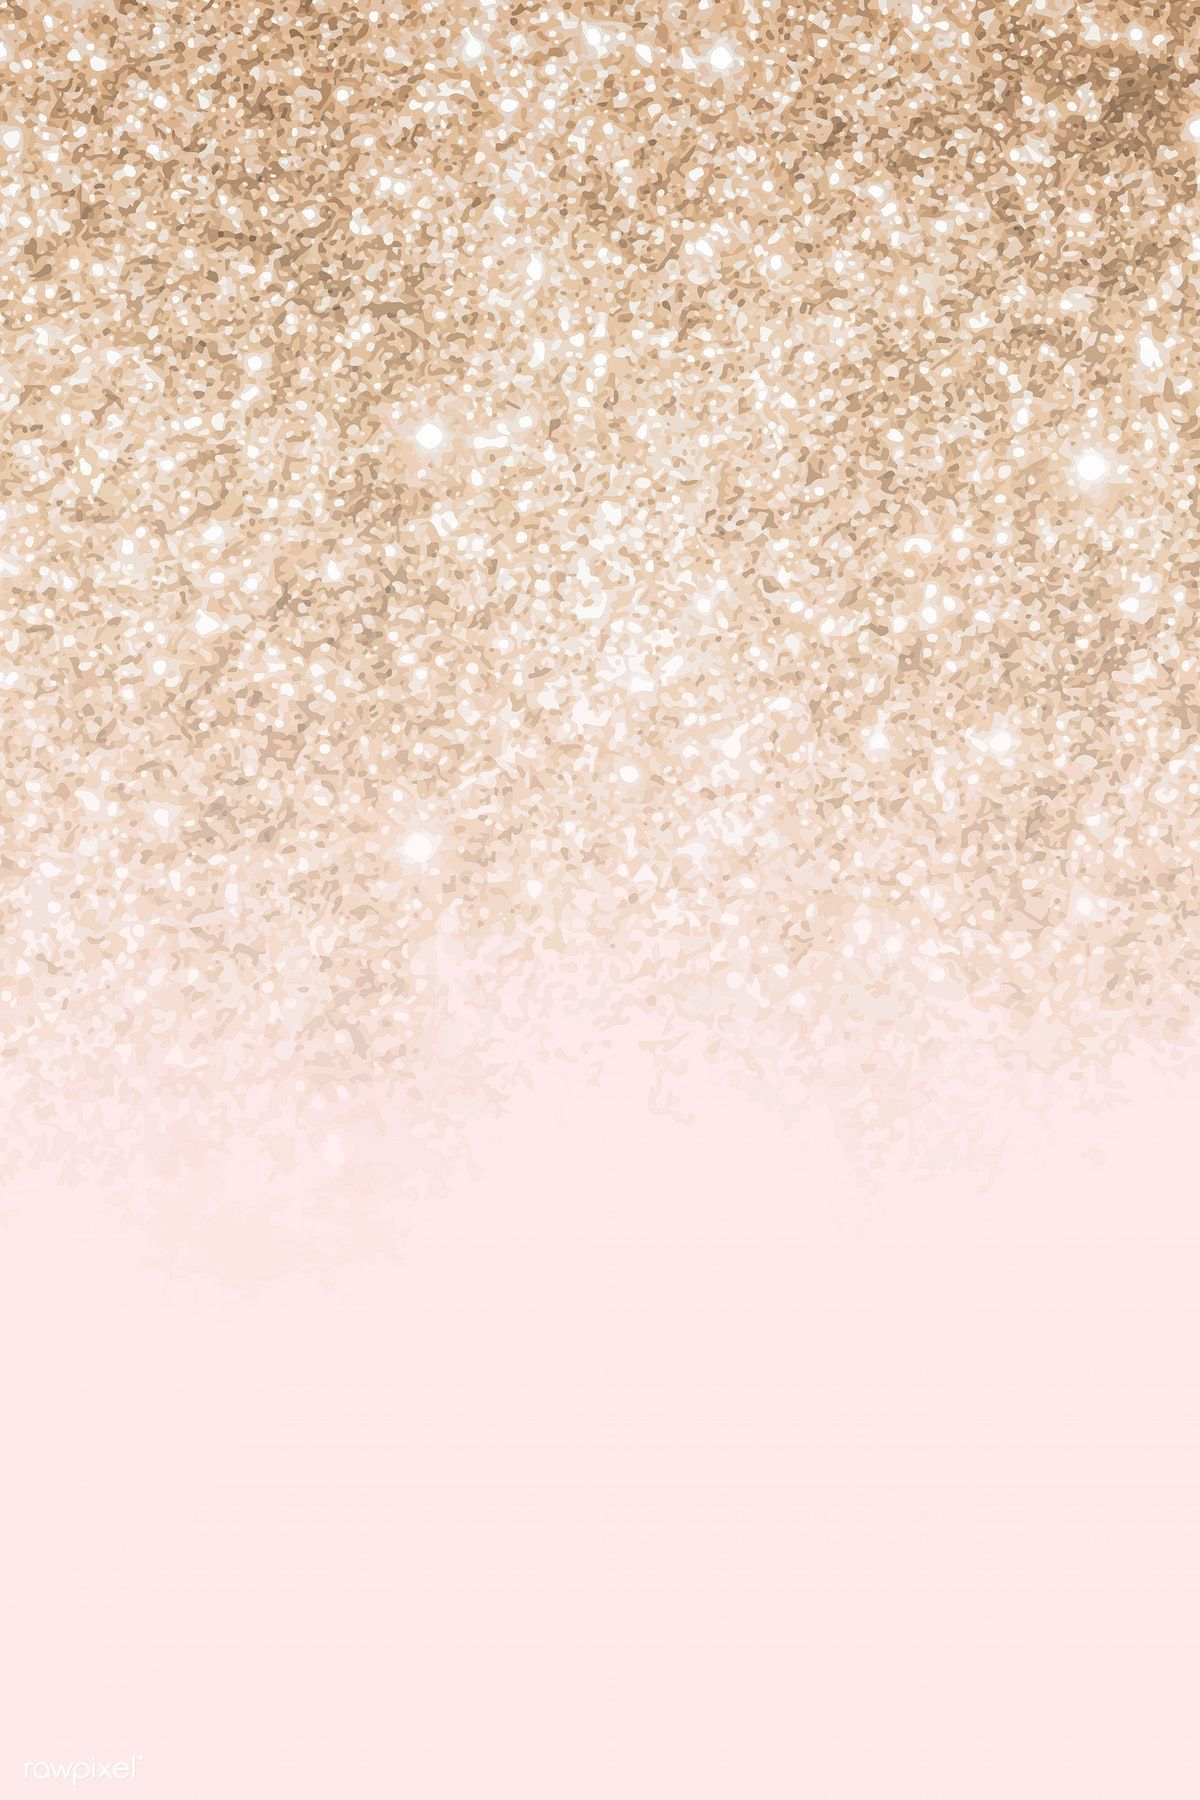 Download premium vector of Pink and gold glittery pattern background